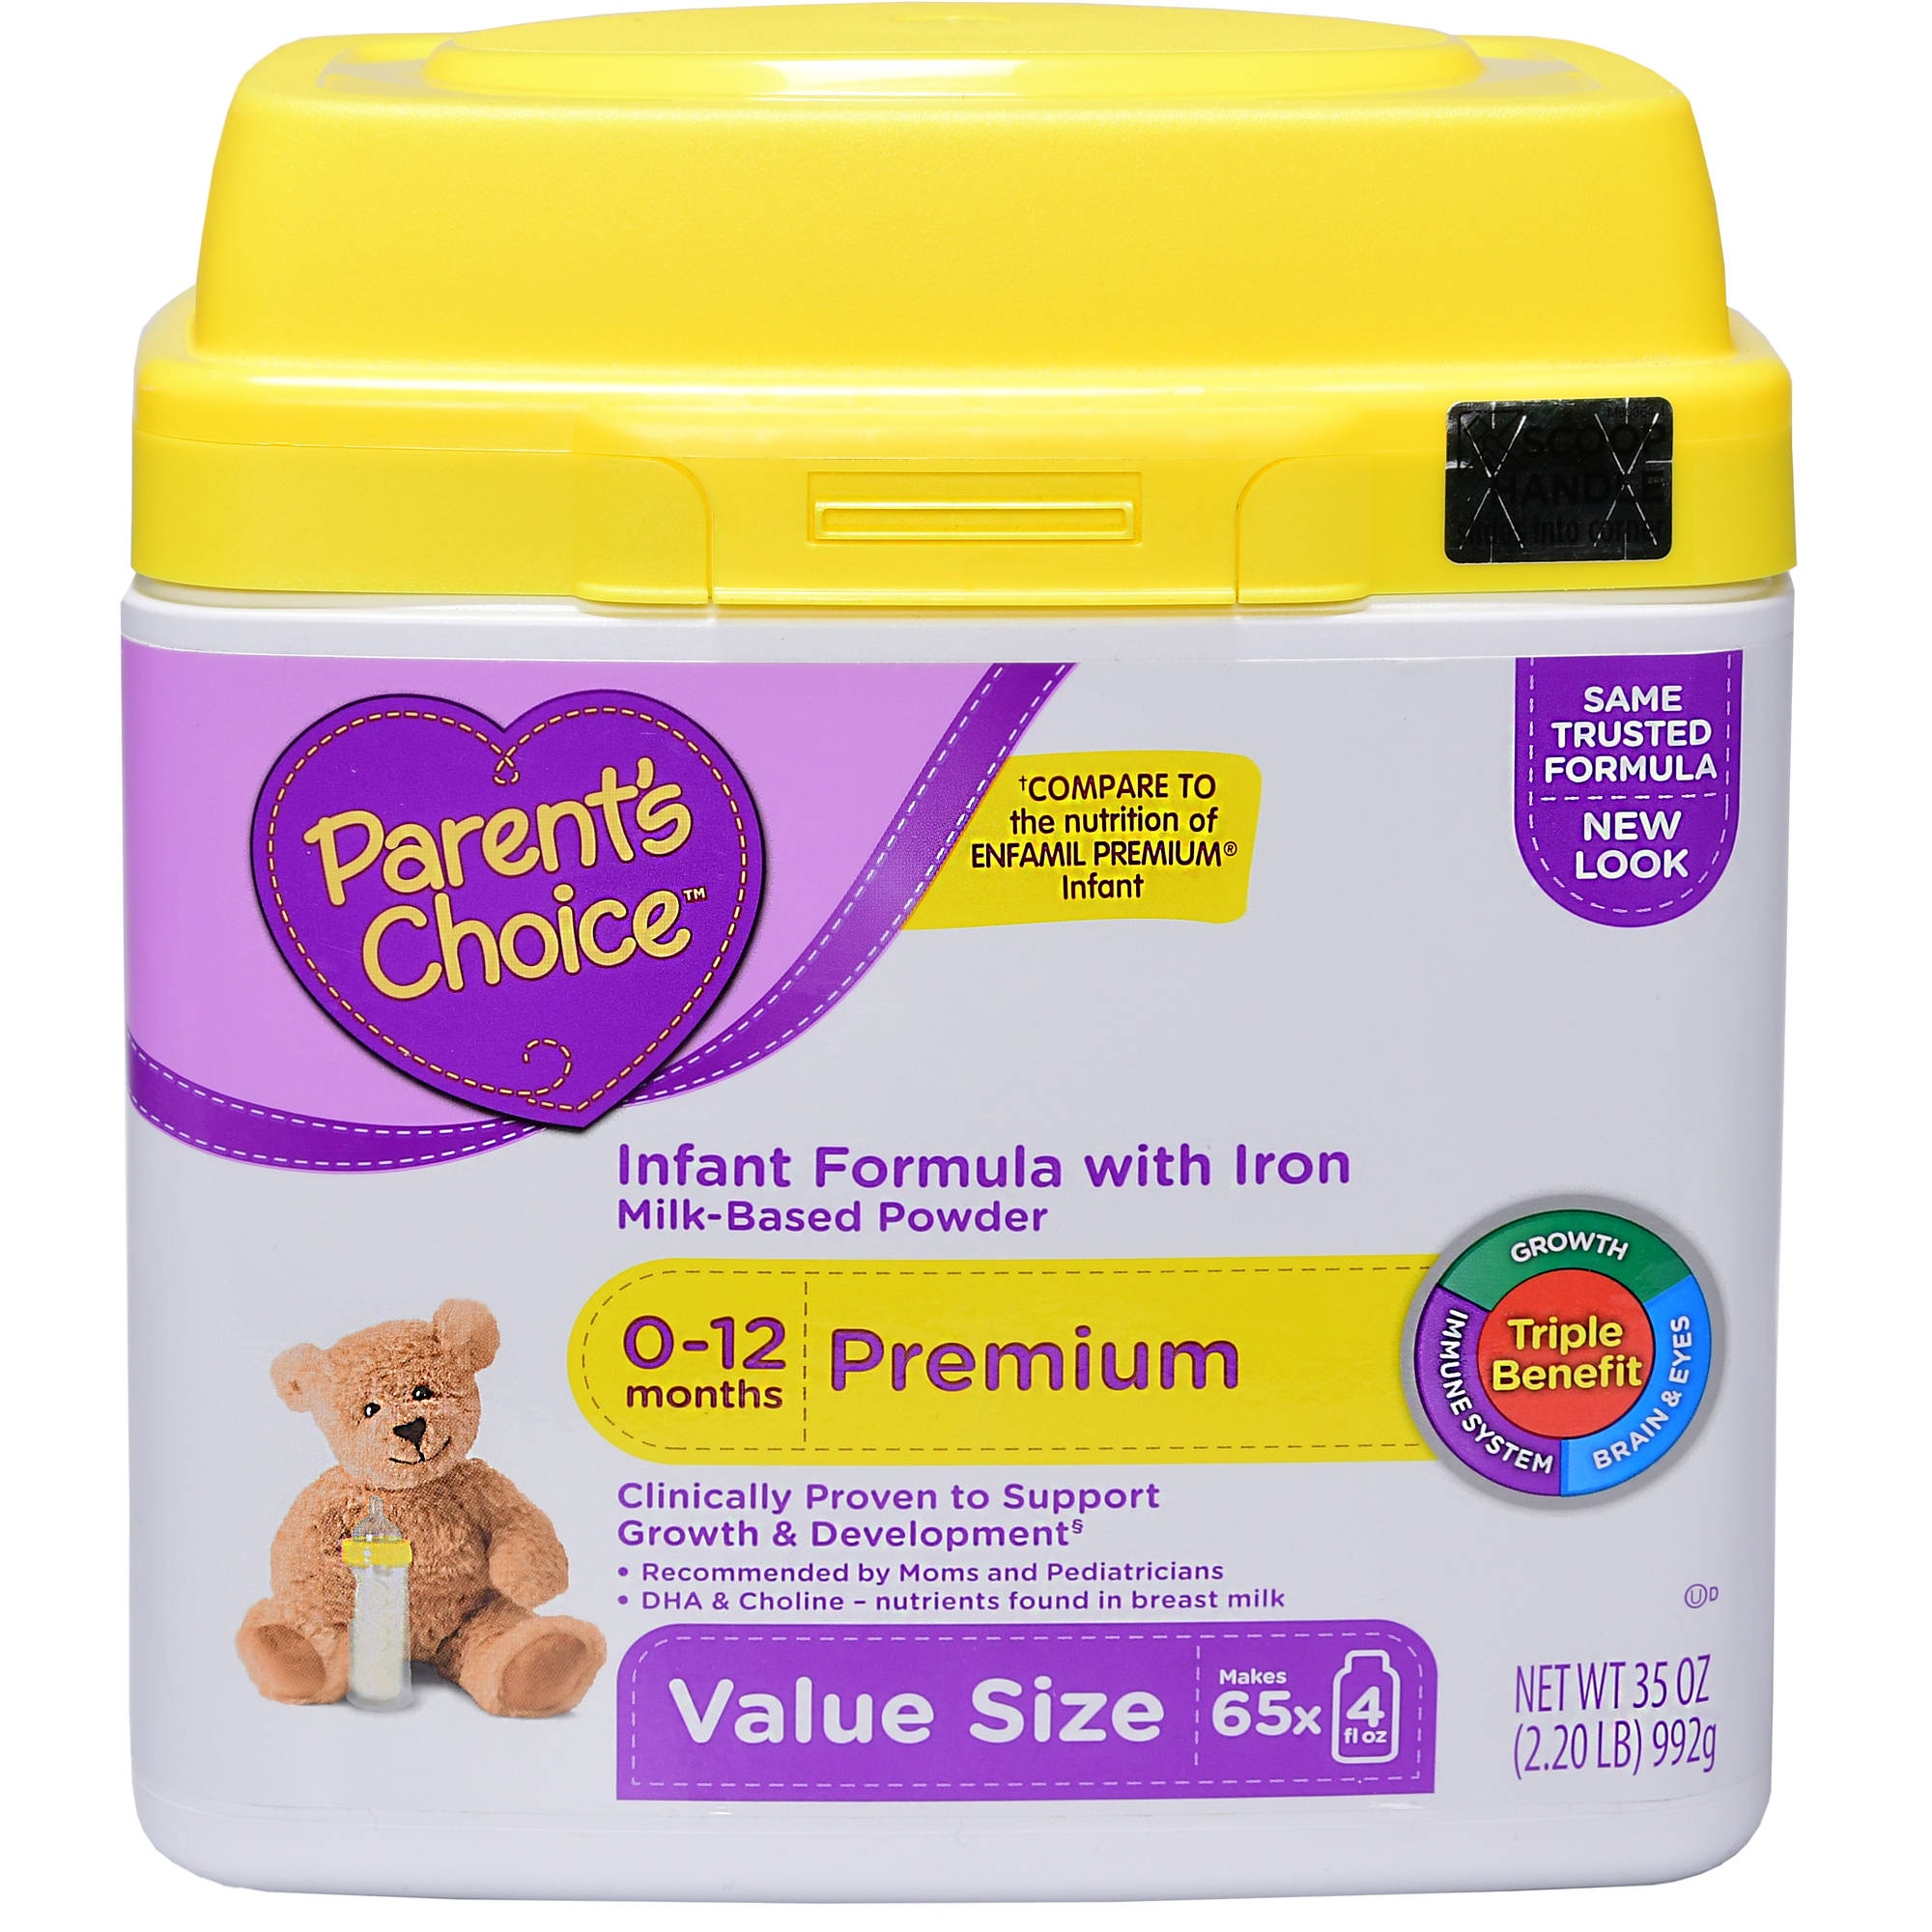 Parent's Choice Infant Powder Formula with Iron, 35oz